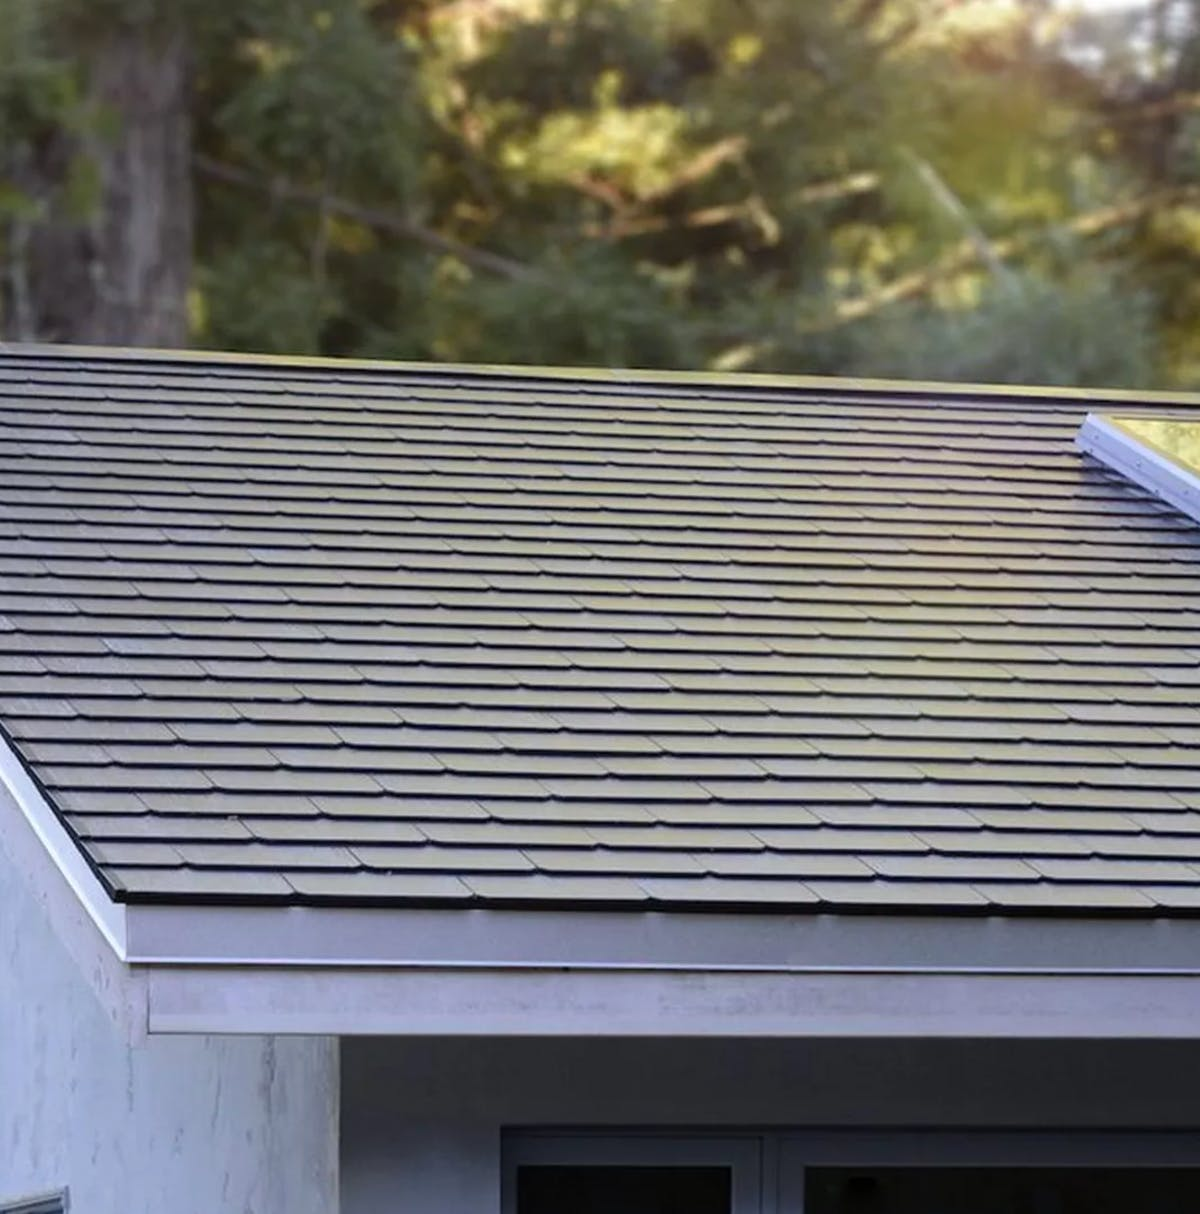 Tesla Solar Roof Version 3 Production Will Speed Up Soon, Elon Musk Reveals